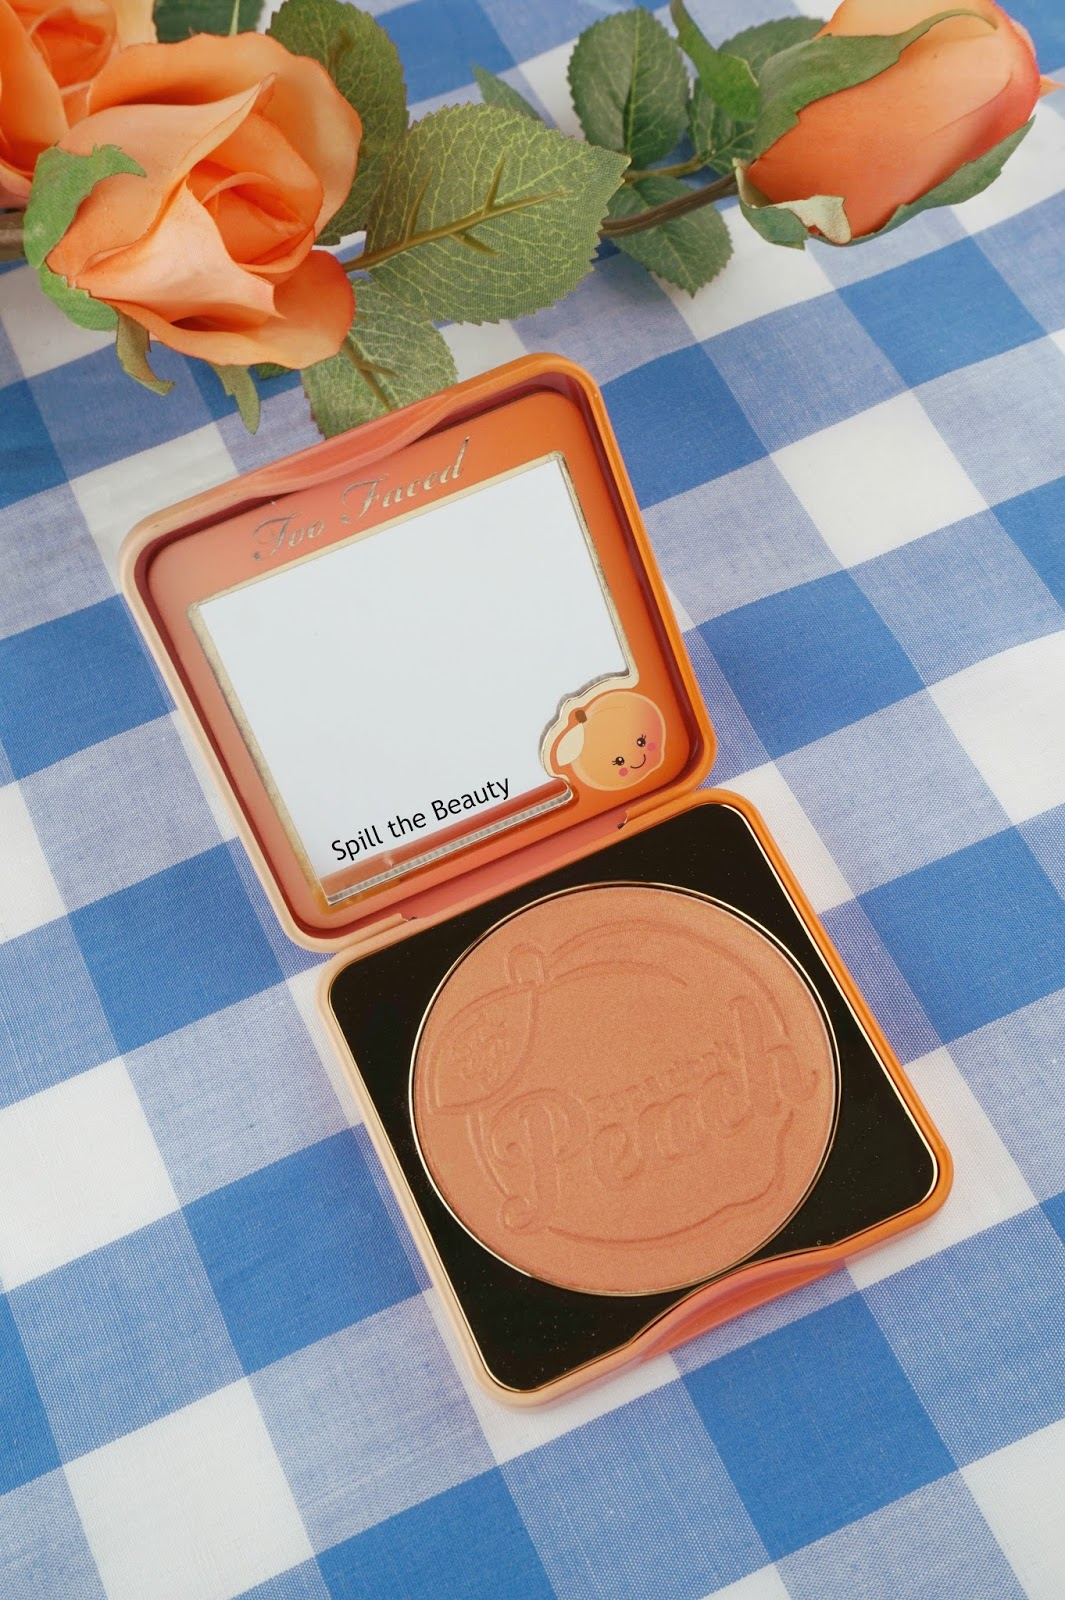 Too Faced 'Papa Don't Peach' Blush – Review, Comparison Swatches, and Look